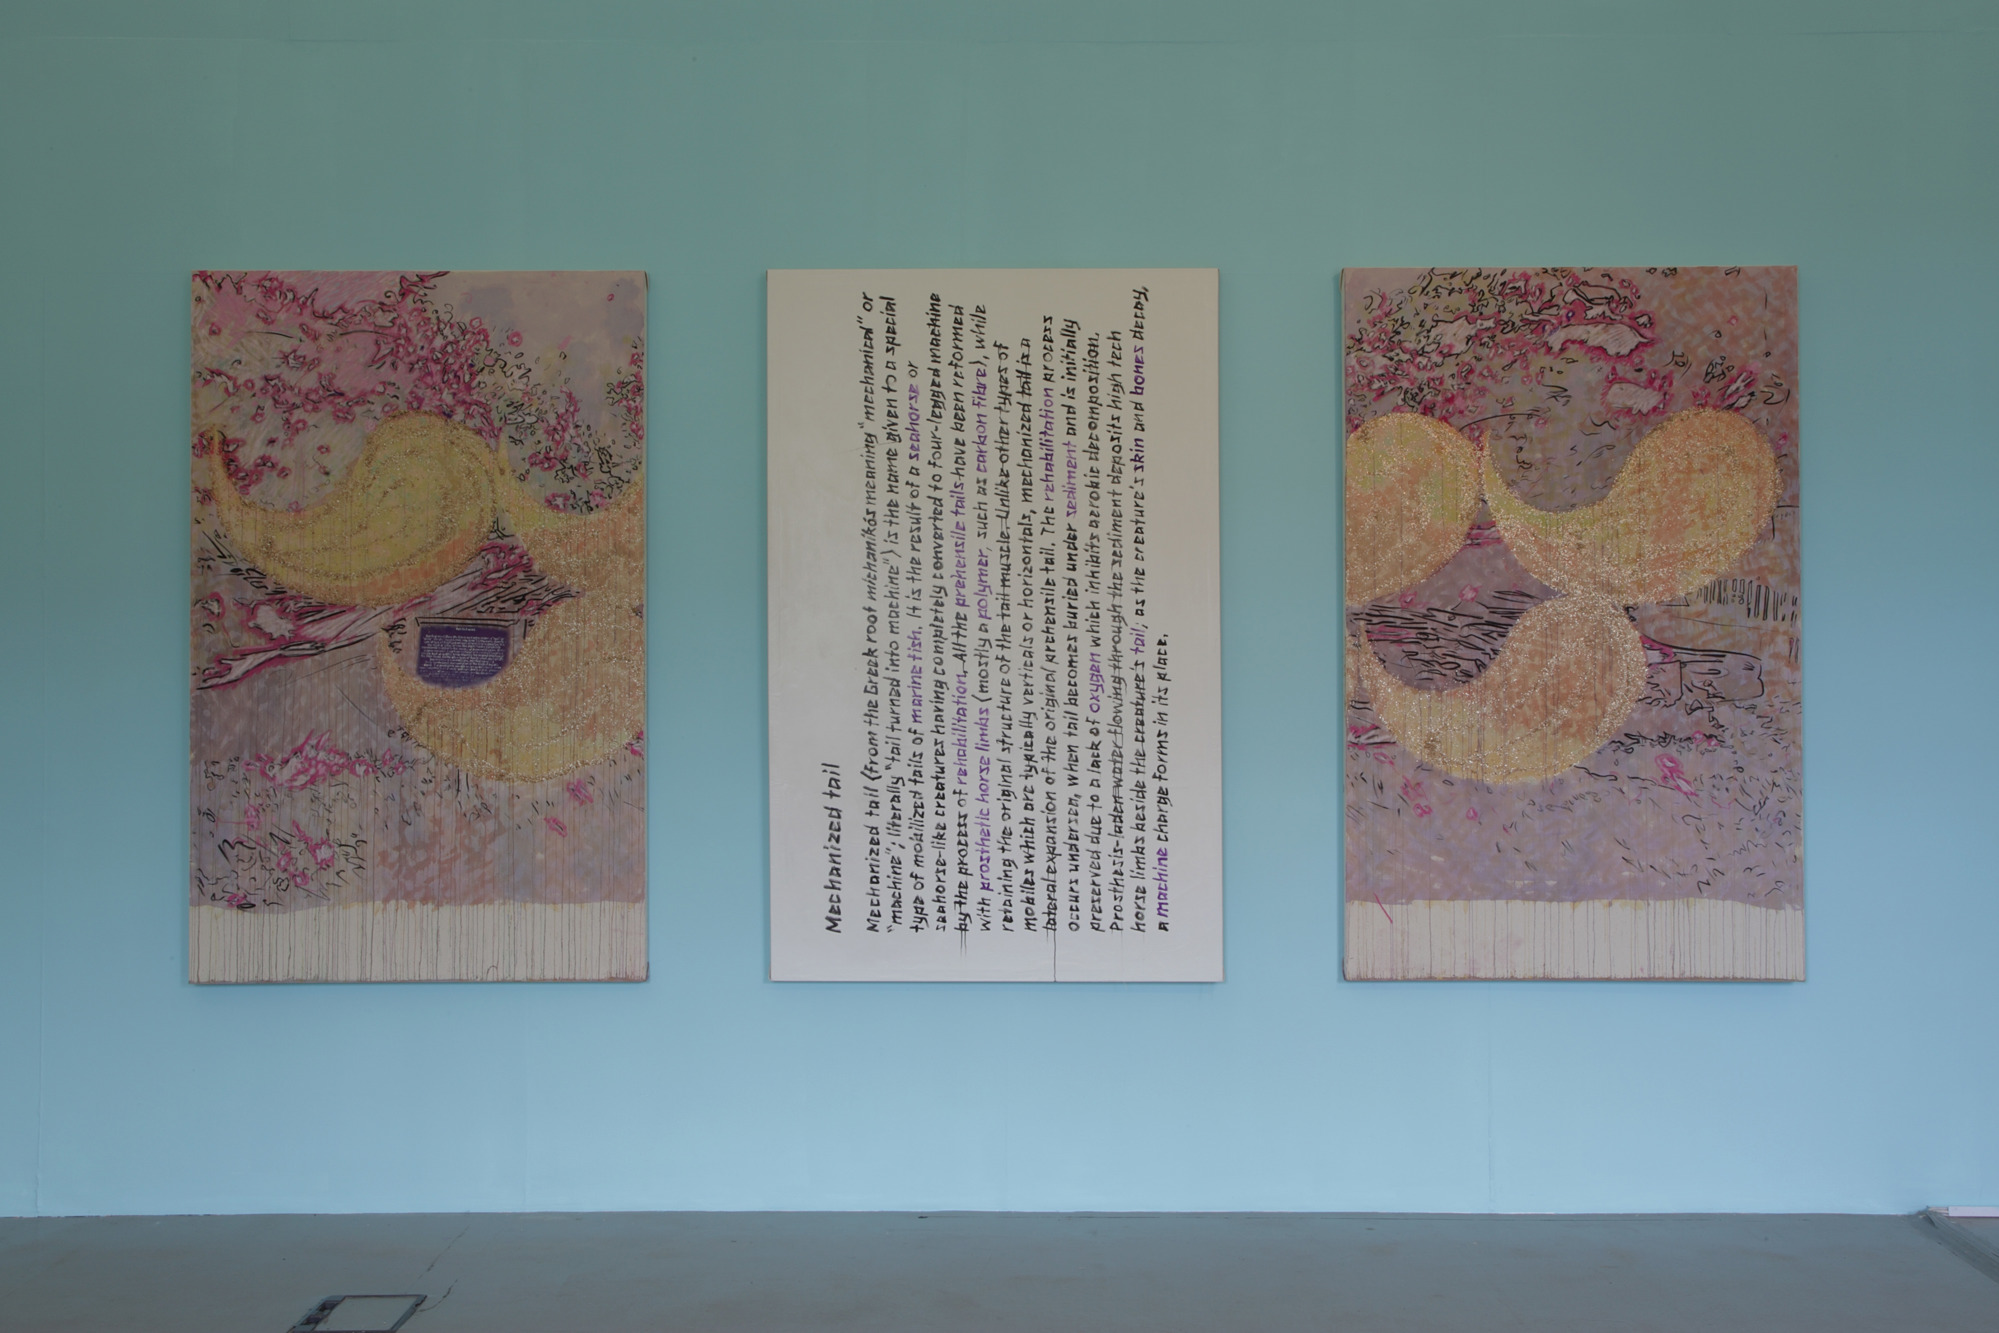 A triptych of large abstract paintings hanging on a blue wall. The two on either side are colourful and look like marbled paper; the central is white with illegible black text on it